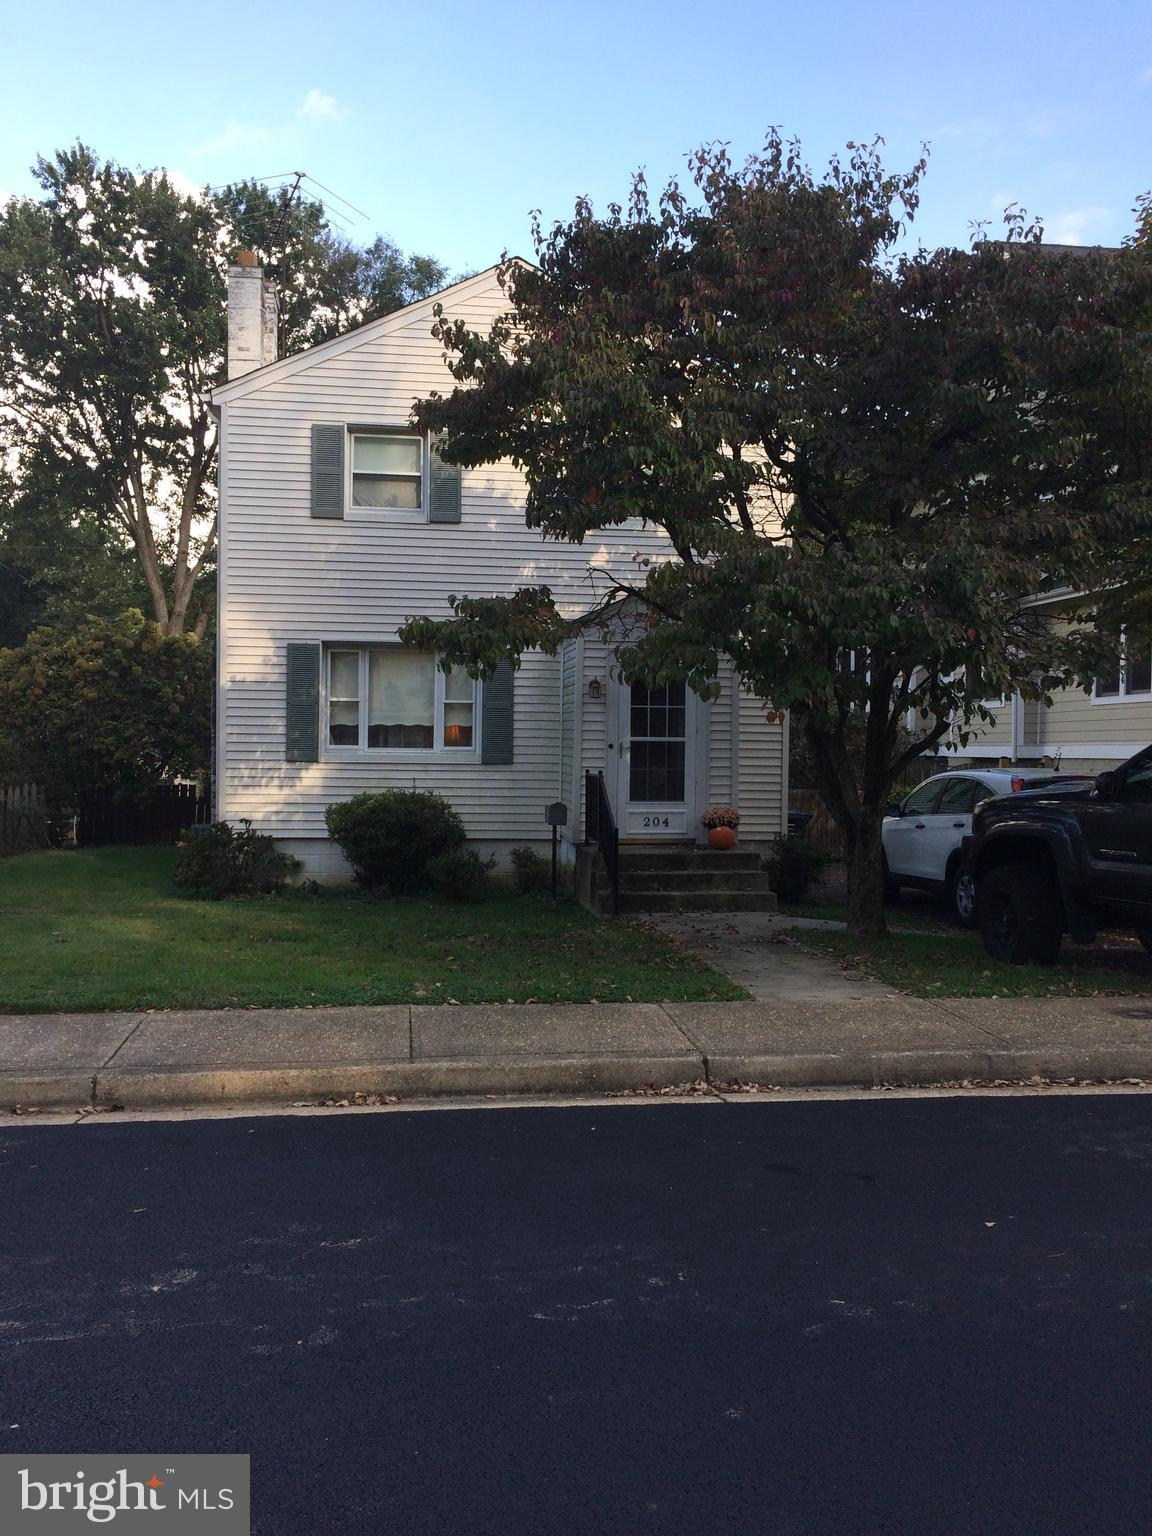 204 W CAMERON ROAD, FALLS CHURCH, VA 22046